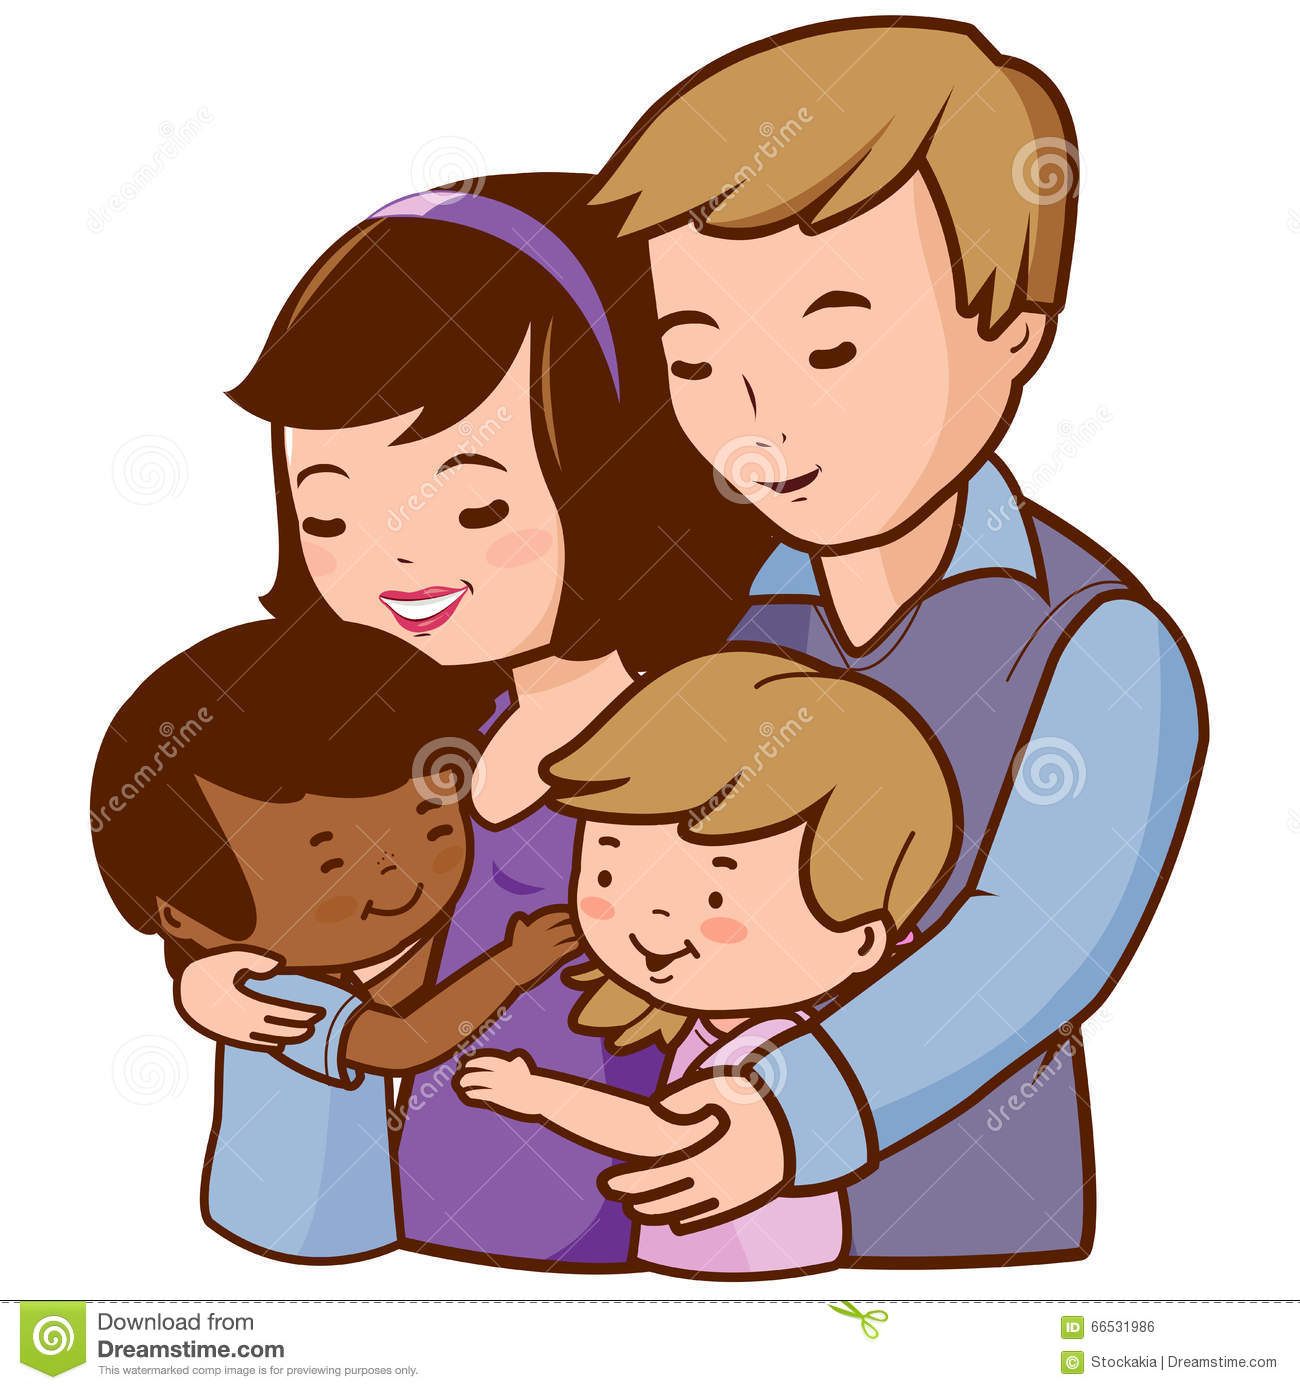 Dad with kids clipart jpg freeuse library Dad hugginh kids clipart - ClipartFest jpg freeuse library